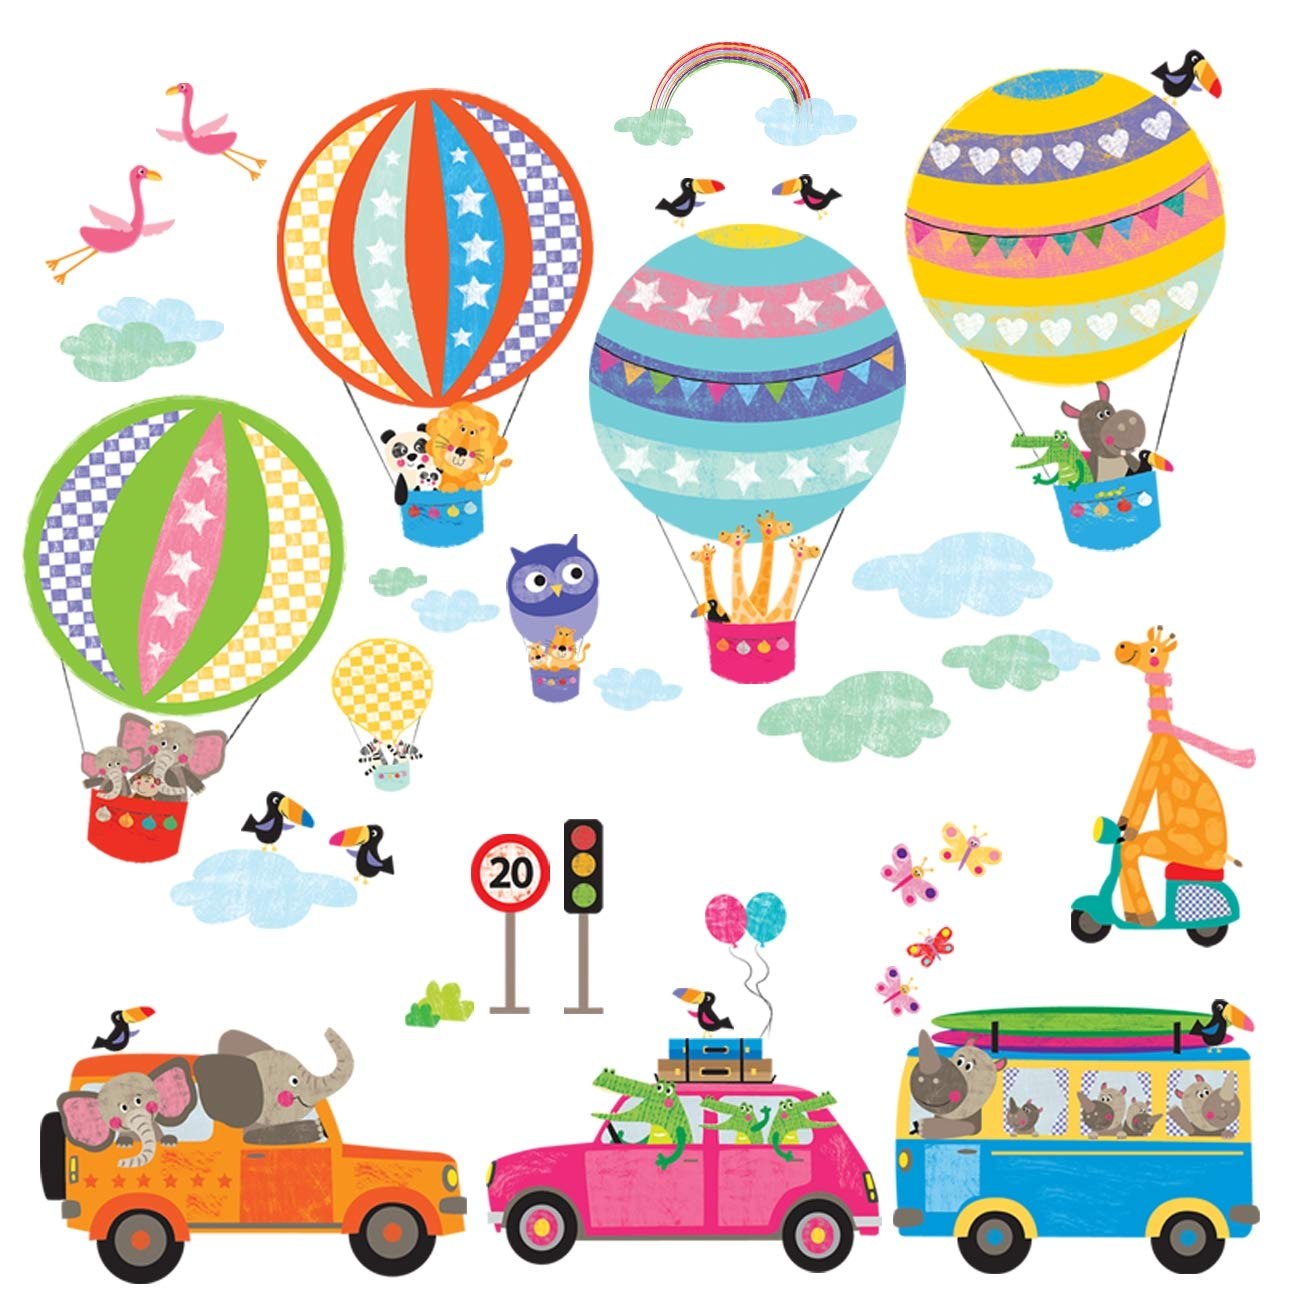 Decowall DA-1710B Hot Air Balloon Animals Kids Wall Stickers Wall Decals Peel and Stick Removable Wall Stickers for Kids Nursery Bedroom Living Room